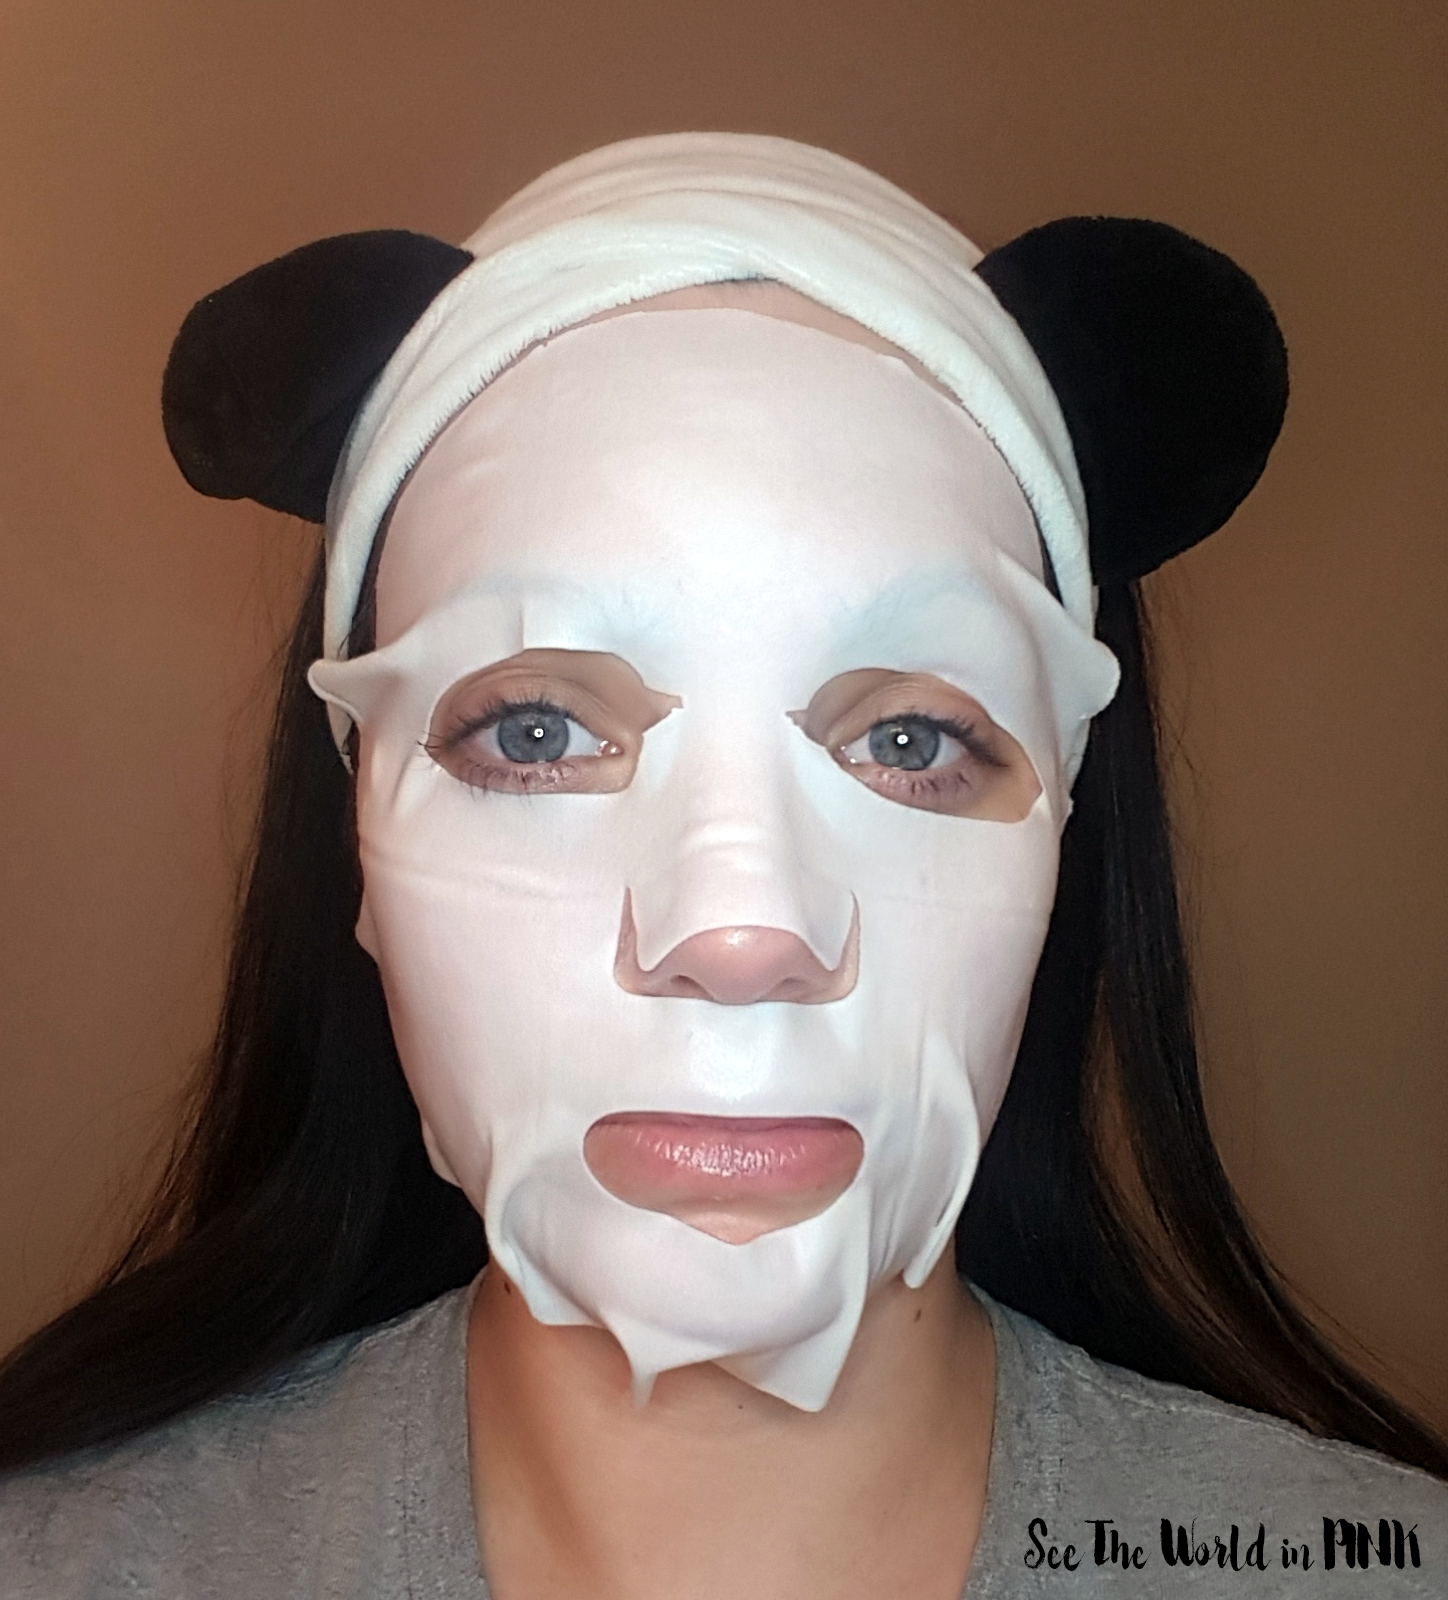 Skincare Sunday #CBBGetsSheetFaced Week Four Recap with Reviews - Tatcha Luminous Dewy Skin Sheet Mask